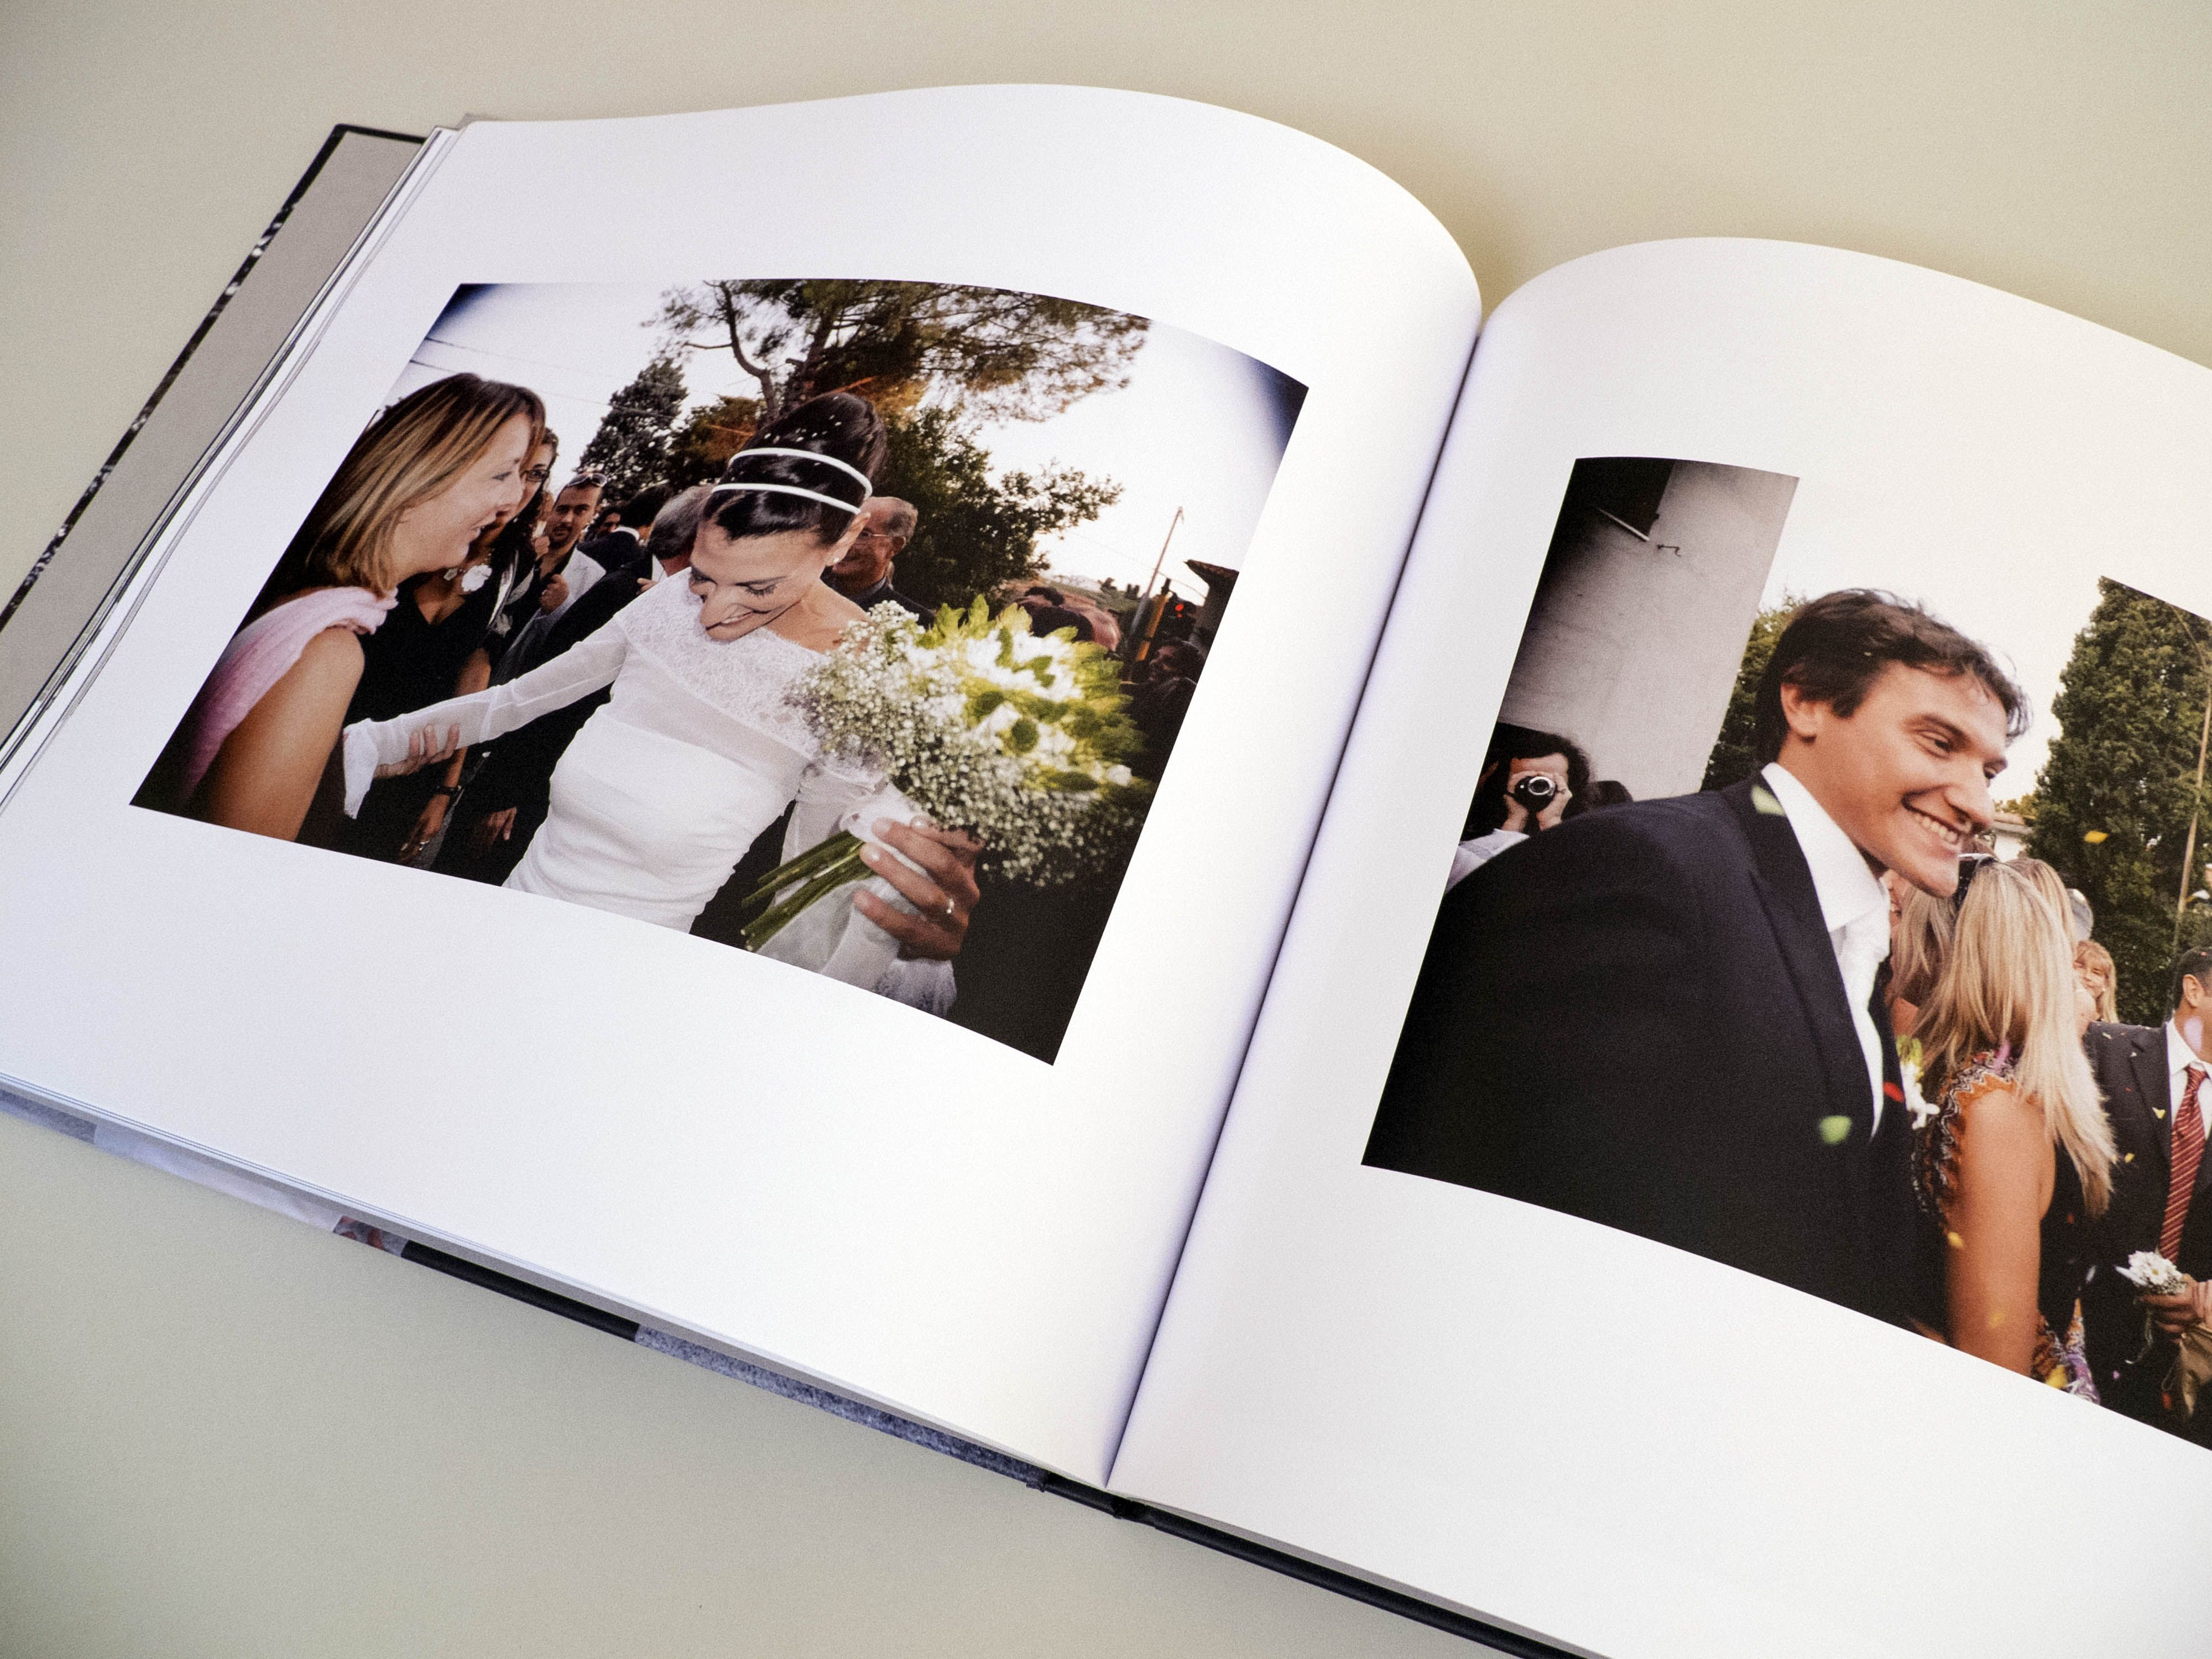 Wedding Giorgio Claudia Photo Book Photobook Blurb Blurbbook Blurbwedding Robertamenghi Graphicdesign Graphic Layout